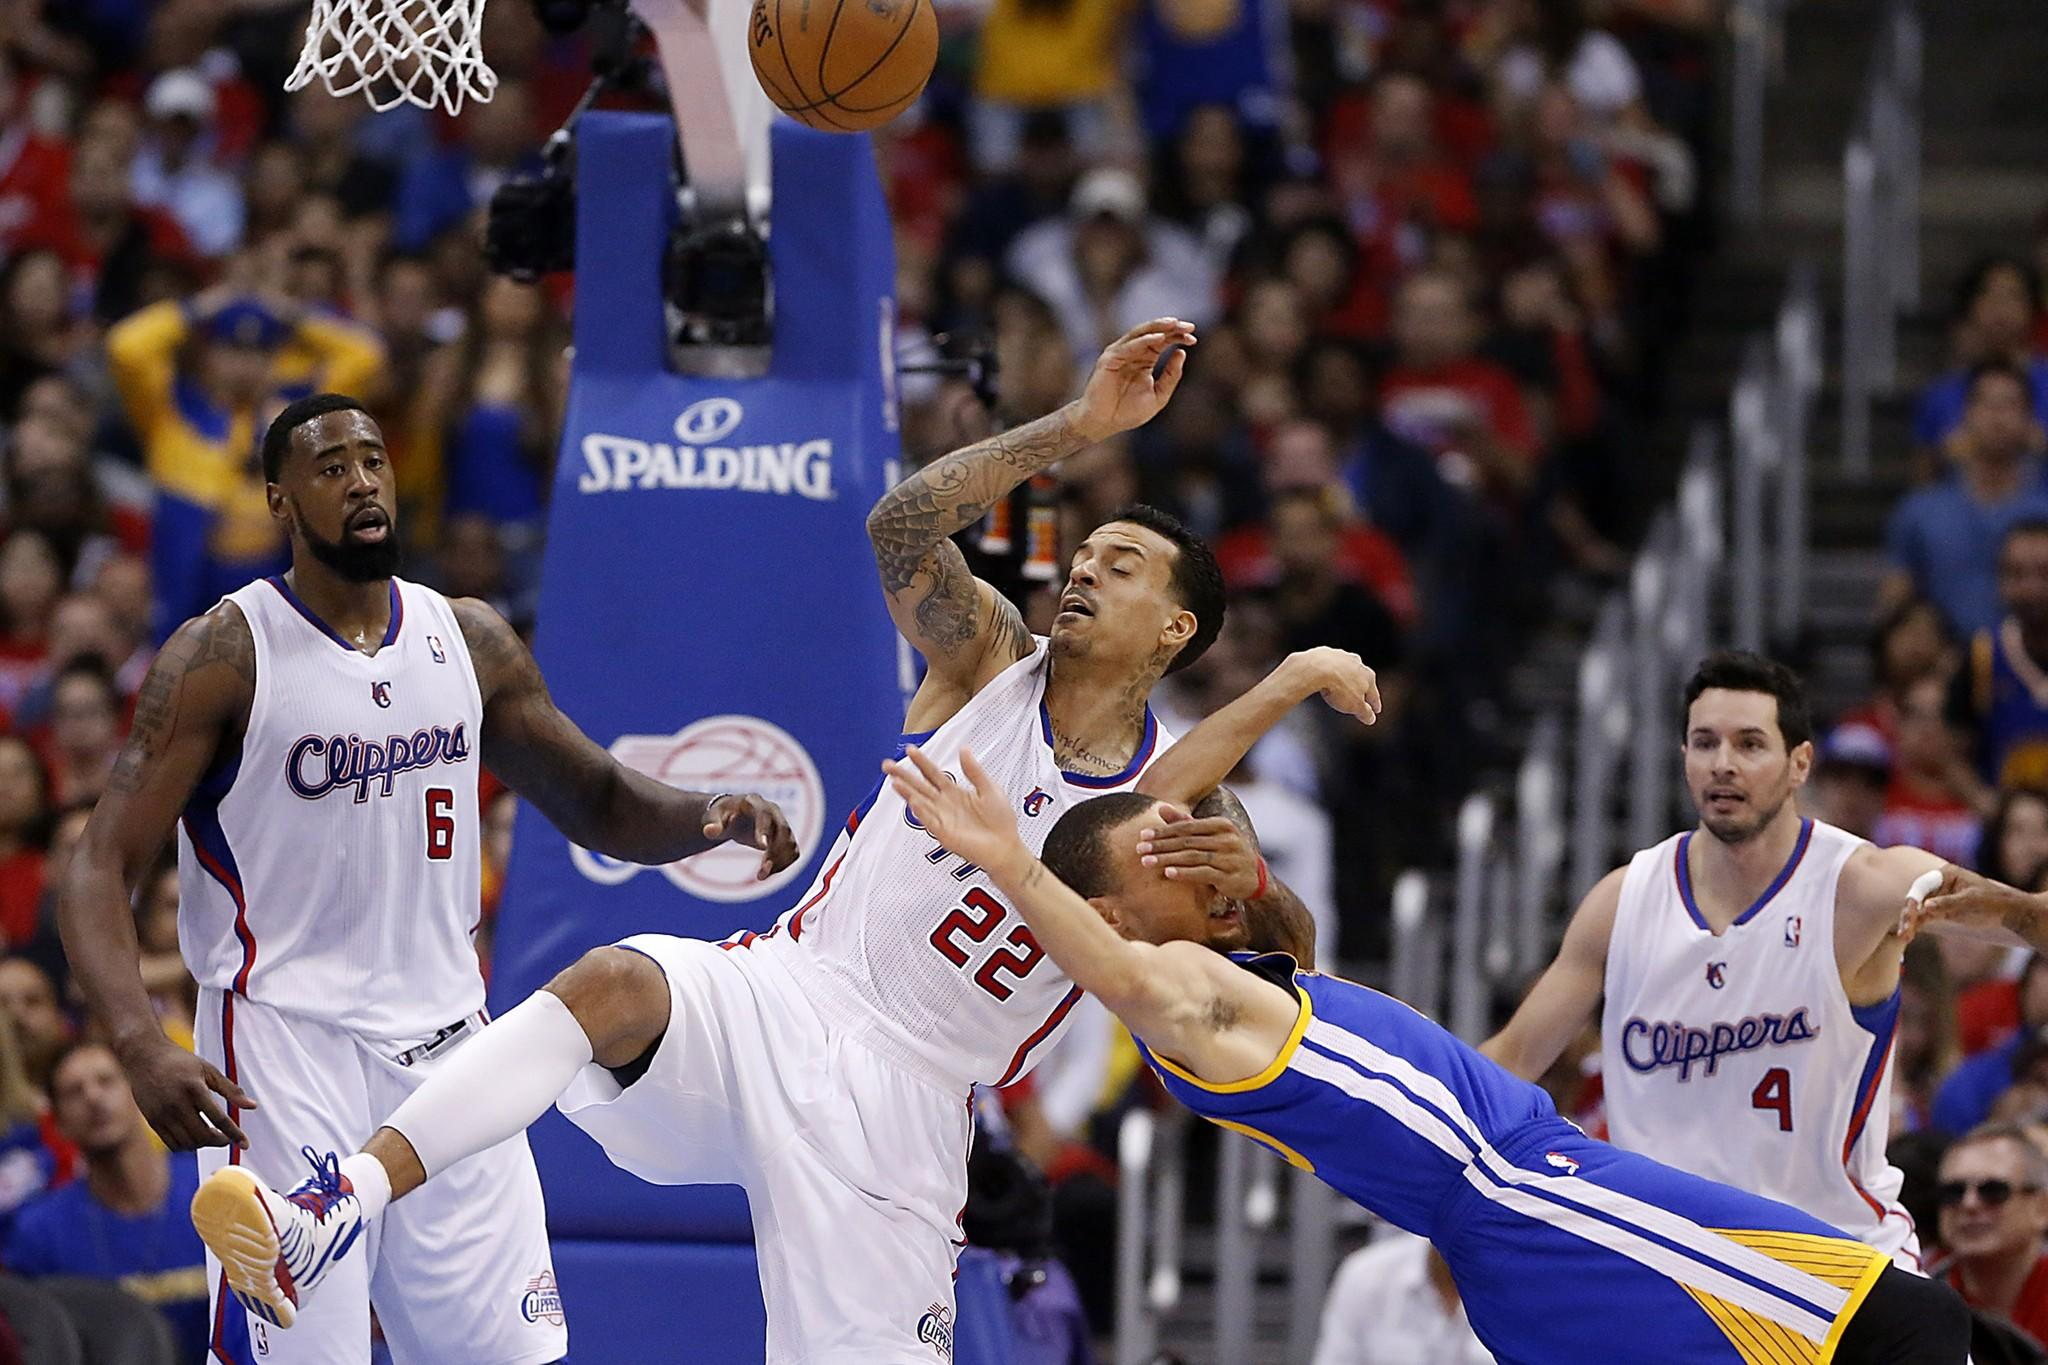 Clippers forward Matt Barnes gets tangled with Warriors point guard Stephen Curry after fouling him.